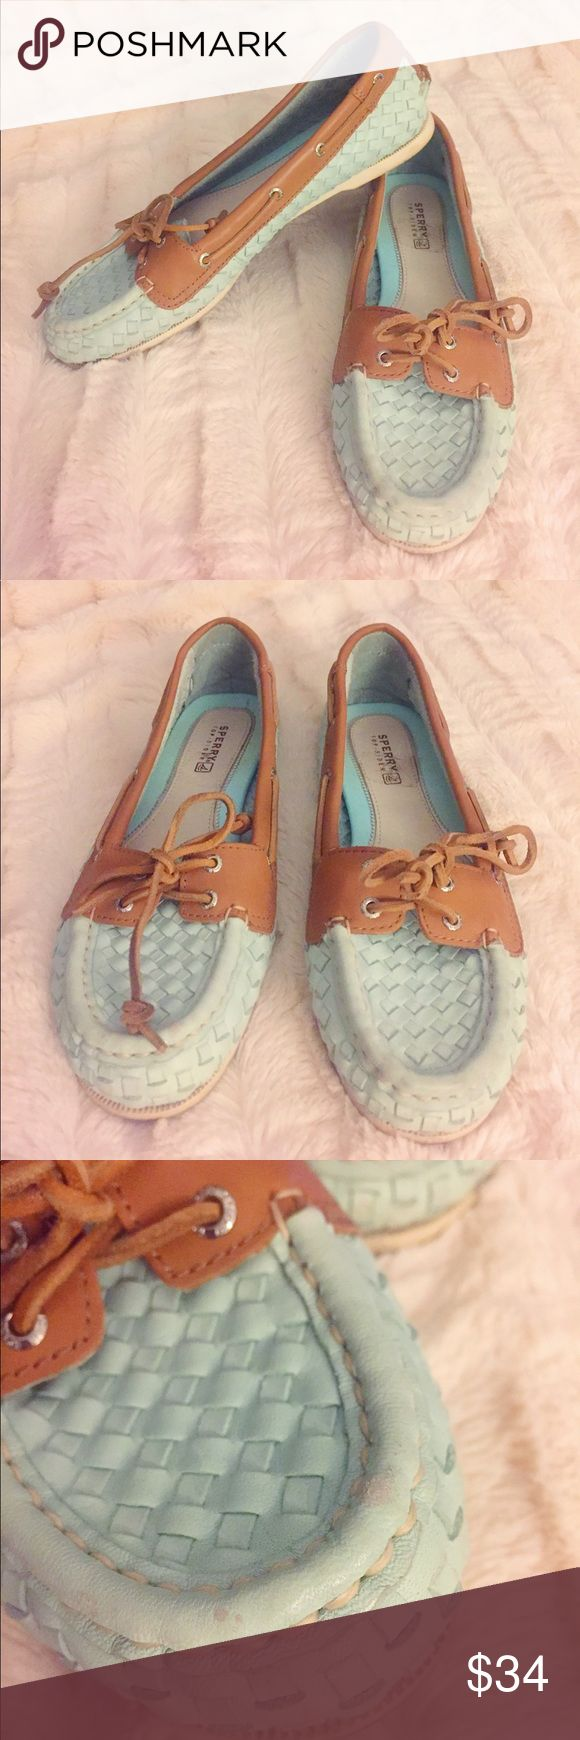 Mint Woven Leather Sperrys Loafers Super cute woven leather Sperrys in mint and light brown! Shoes are in good condition, just has some light  wear and scuffing on the front edge as seen in photo. These shoes are very comfortable. Perfect way to make a casual or work outfit that much cuter! 🌟Open to reasonable offers!🌟 Sperry Top-Sider Shoes Flats & Loafers